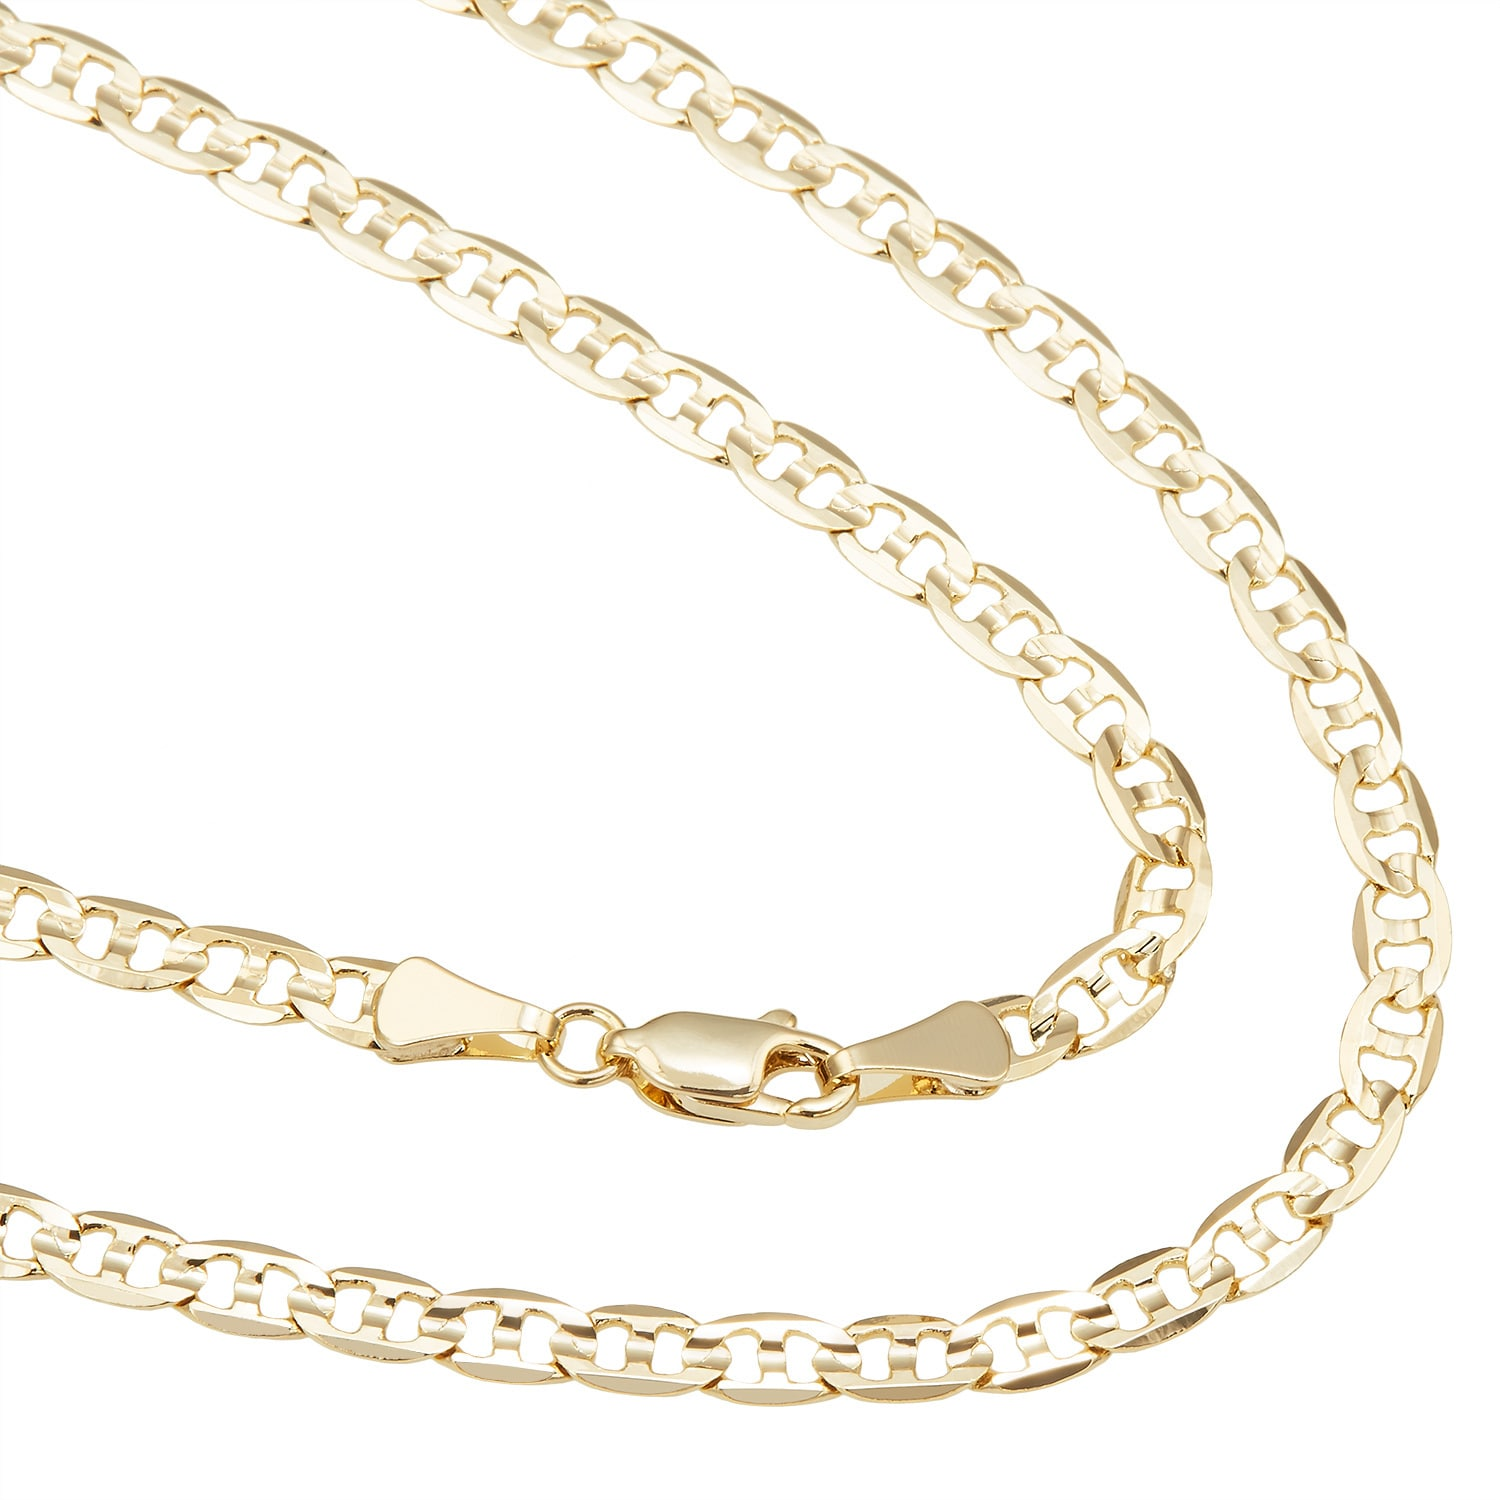 Simon Frank  Gold Overlay 4mm Gucci-style Necklace (20-30 inch)